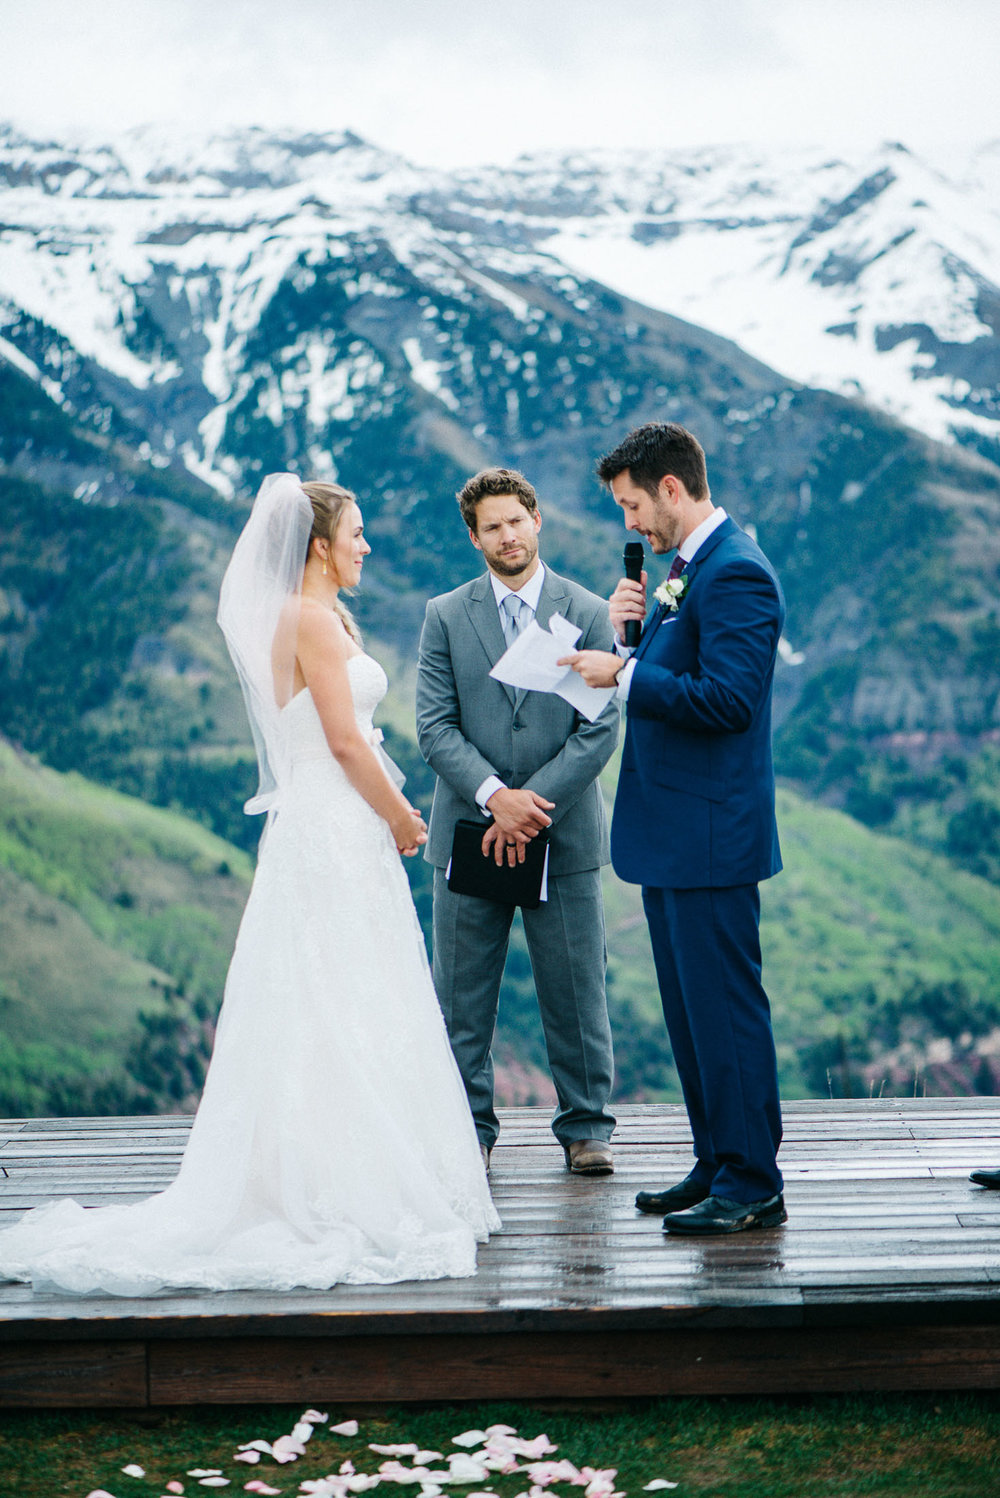 101elopement-photographer-colorado-telluride_wedding_photographer_colorado_mountain_wedding_photographer_brie&tyler_1760.jpg